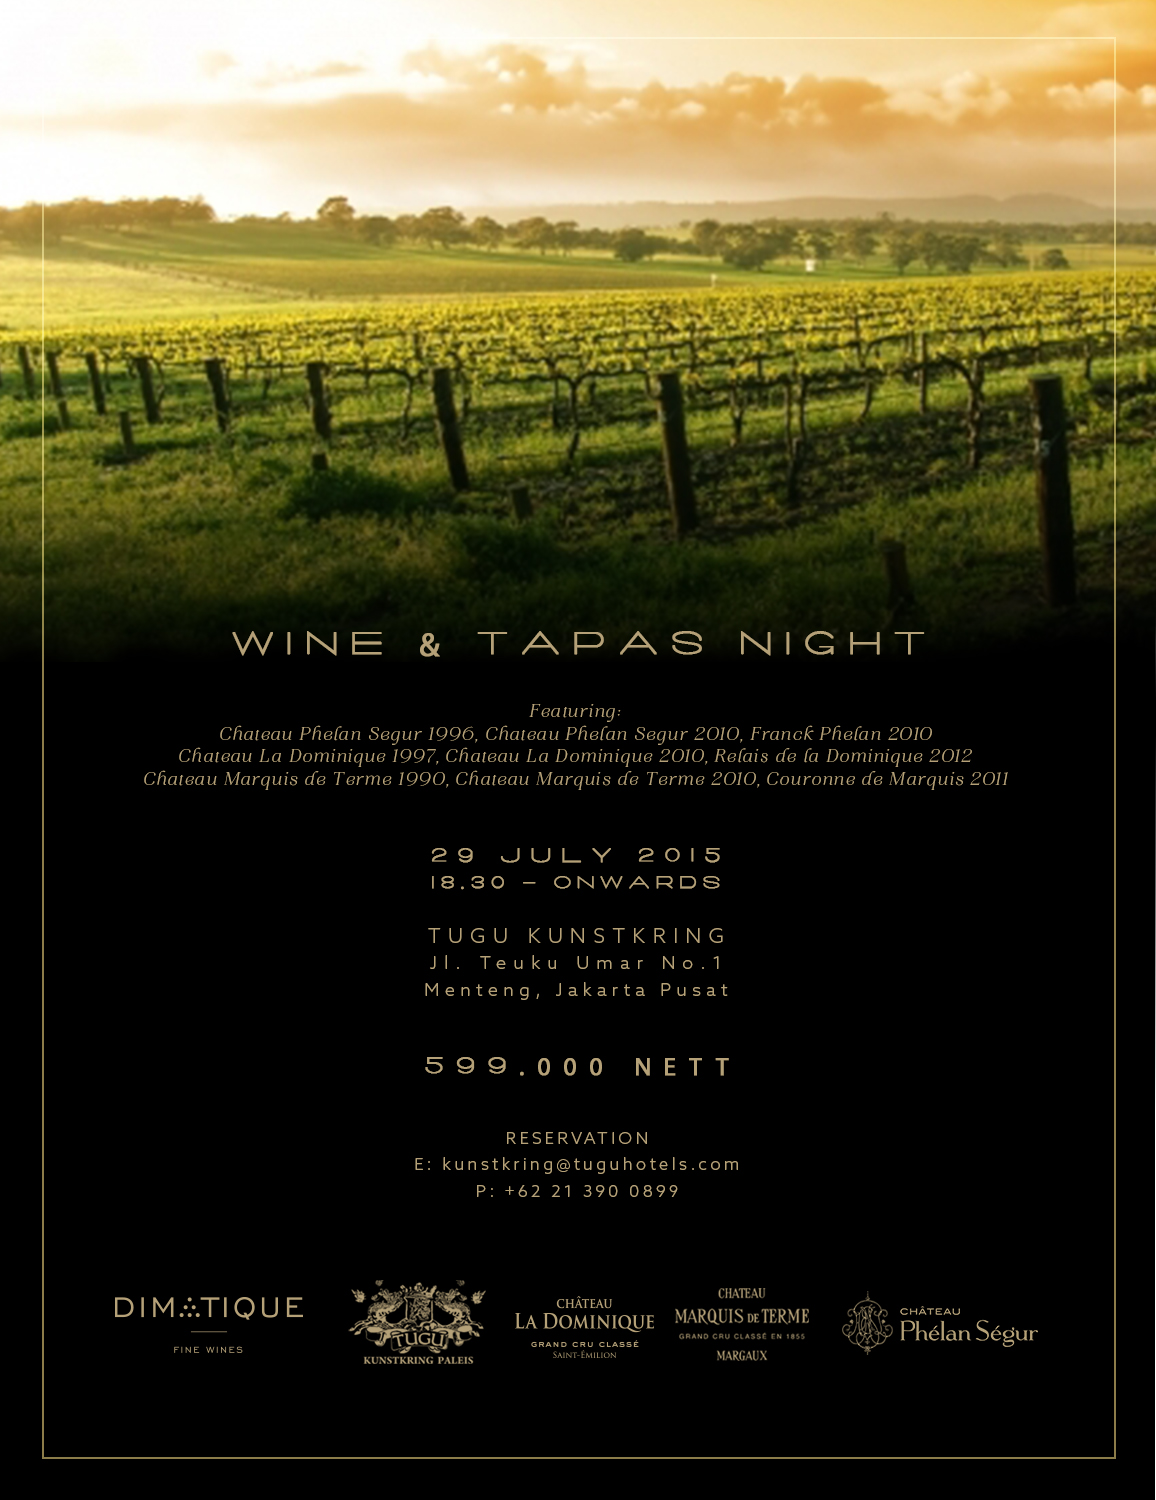 Wine & Tapas Night 29 July